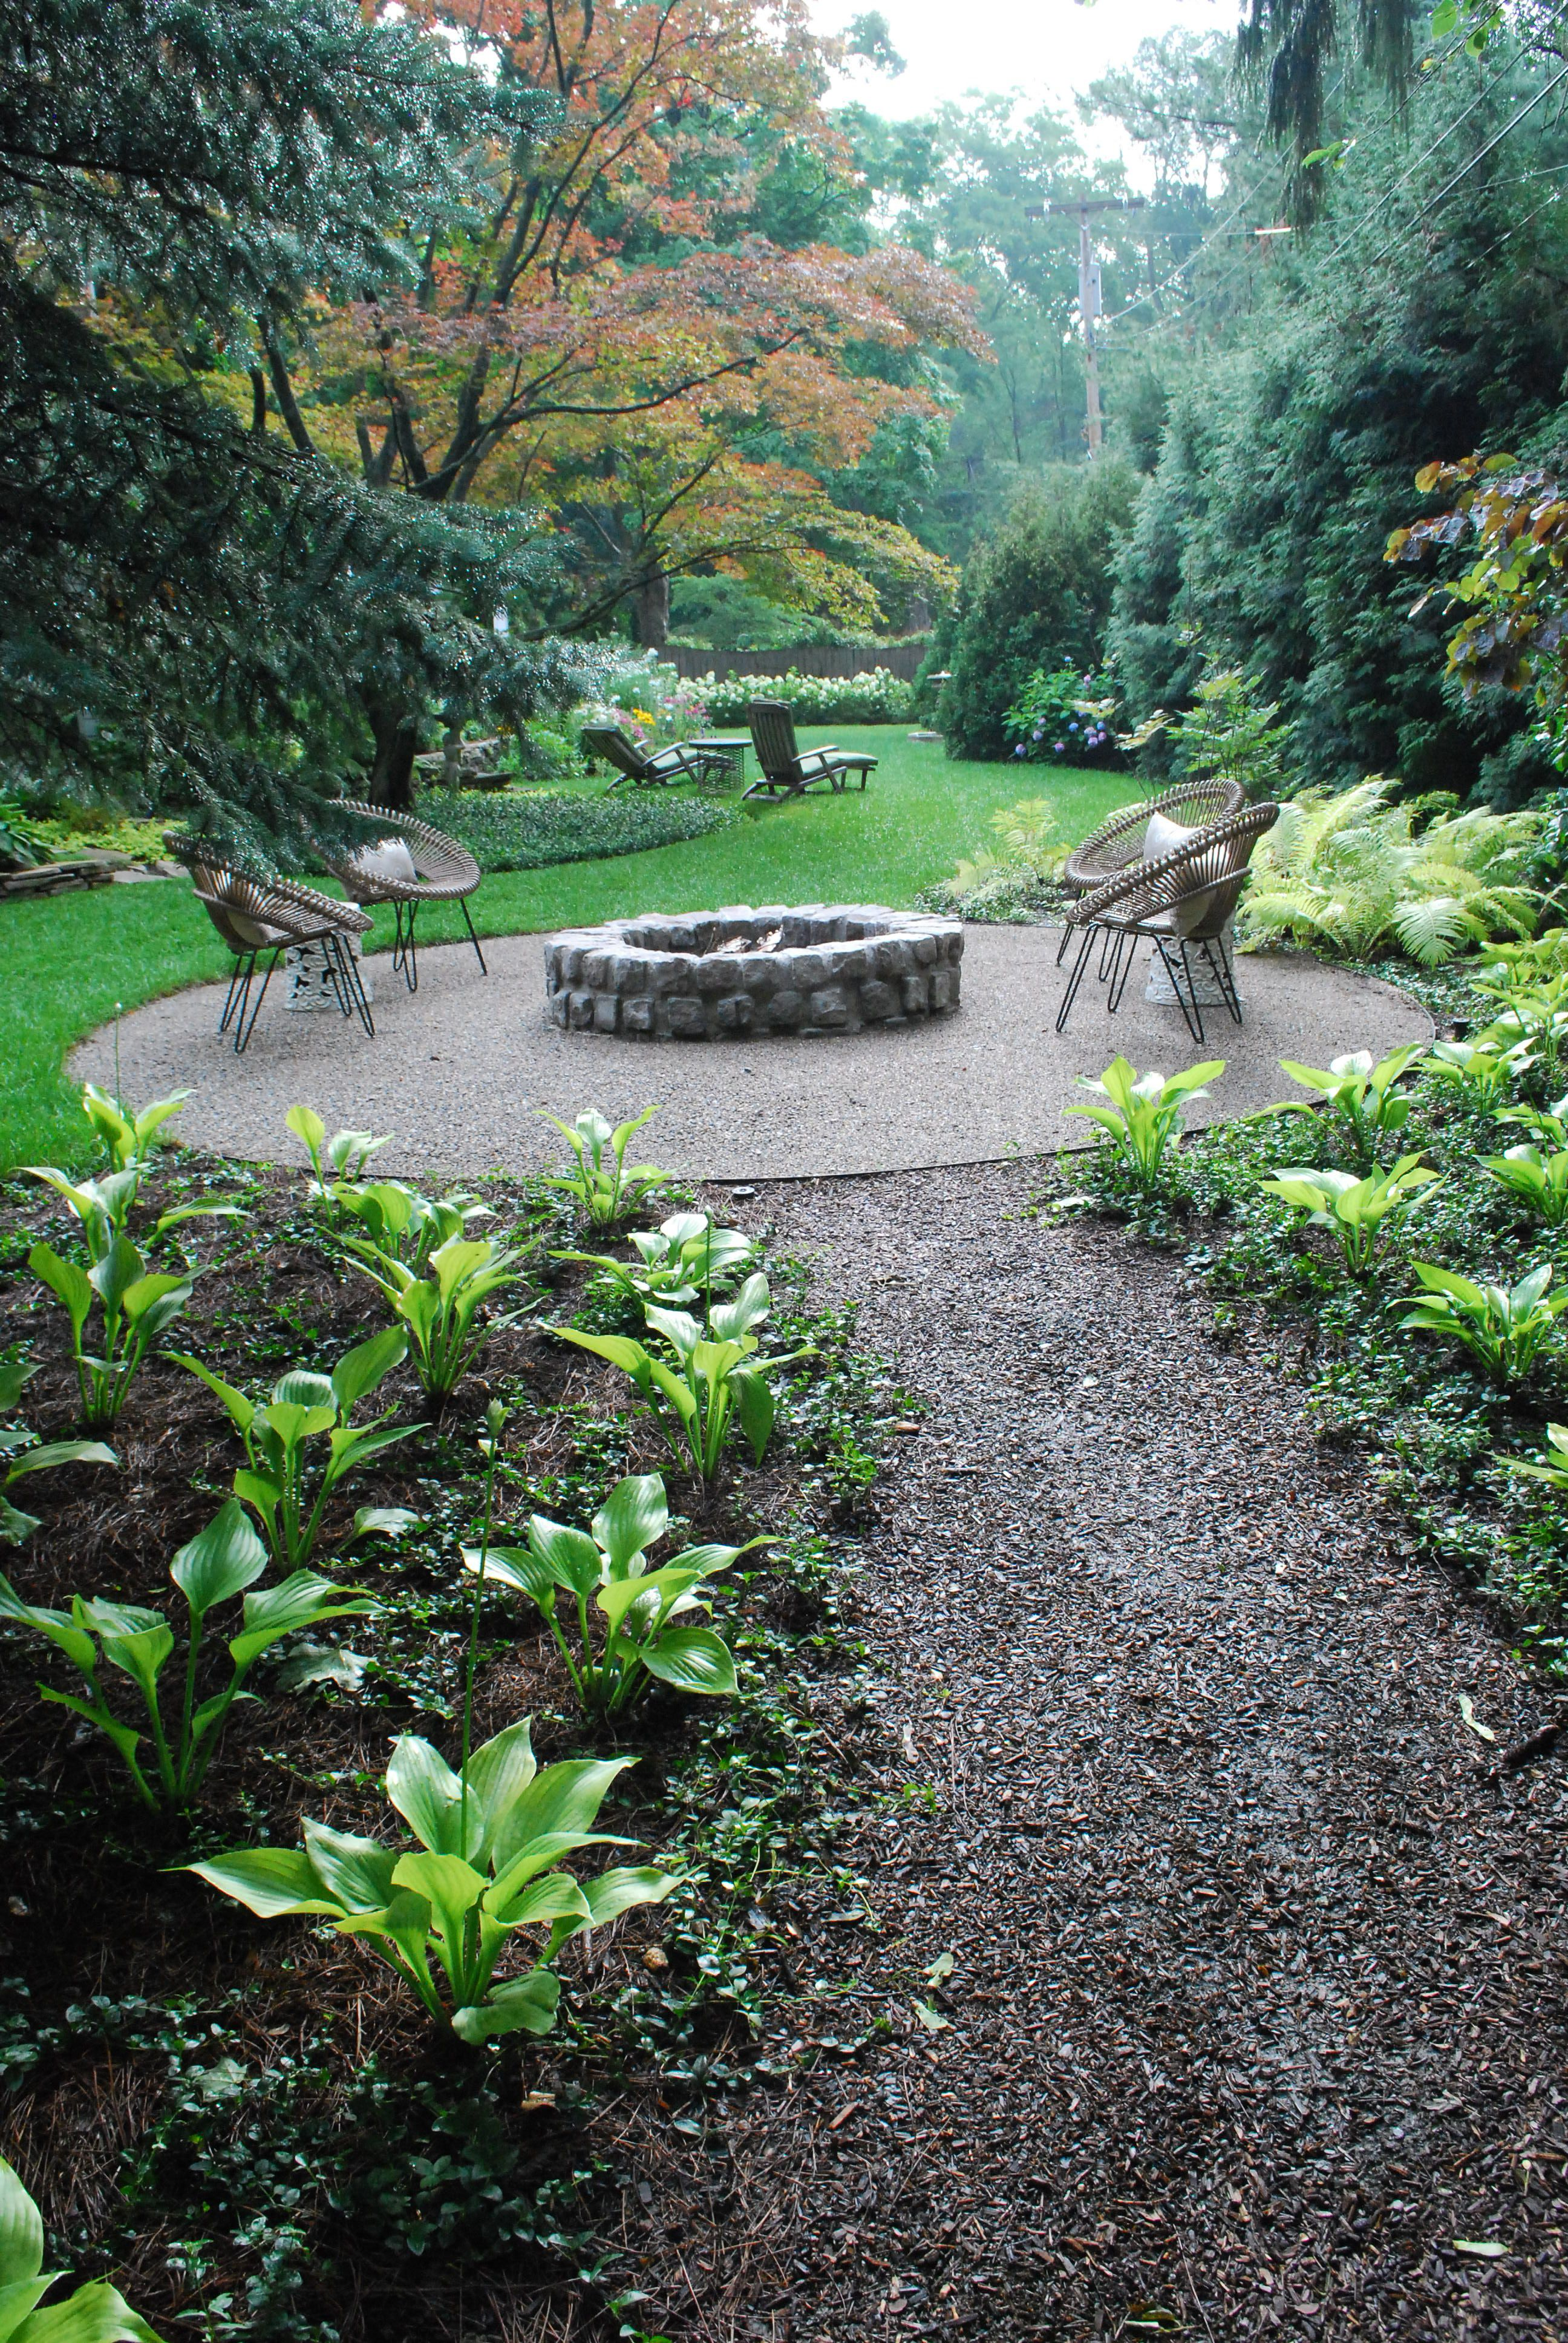 Circular Firepit In The Foreground Is A Strong Visual Stopper It Strongly Serves As A Gesture That Outdoor Fire Pit Shade Garden Design Fire Pit Landscaping